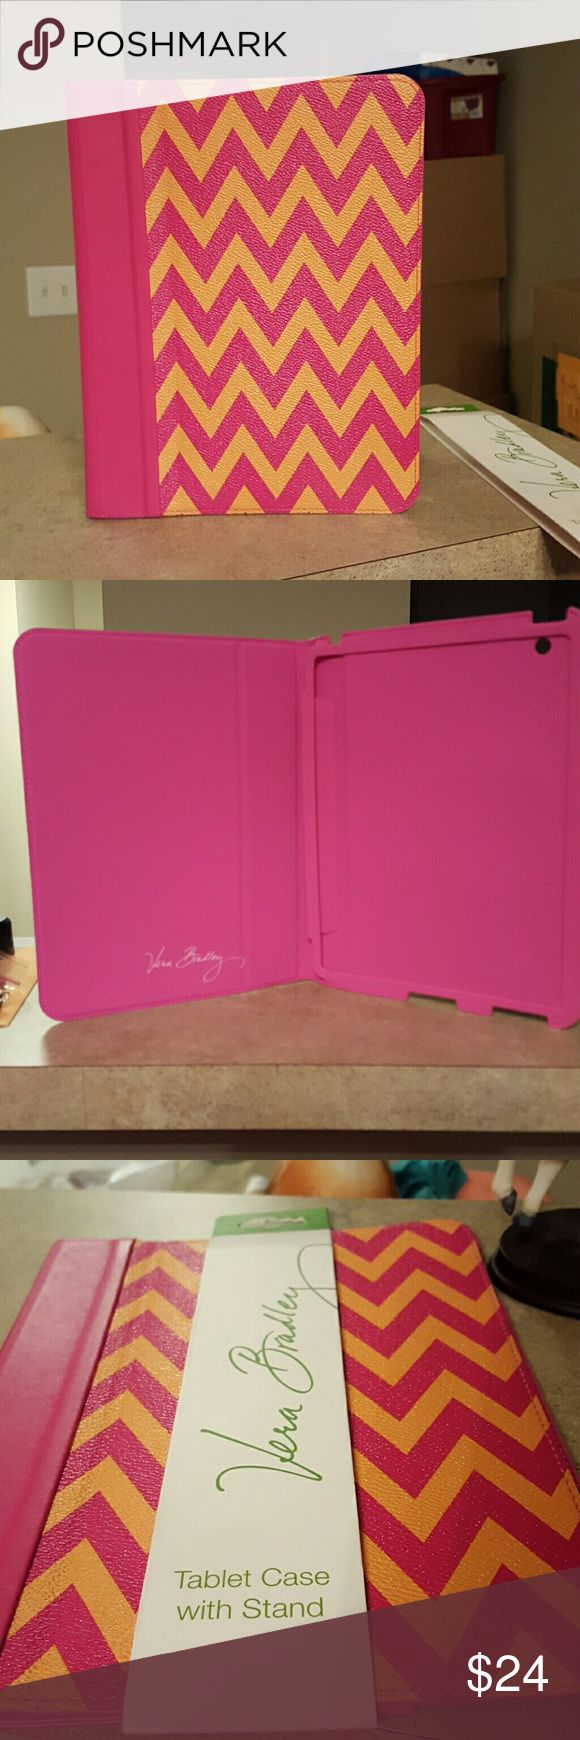 """Vera Bradley Tablet Case w/Stand Never been used.  Vera Bradley Ziggy Zags pattern.  Has original VB but no price tag. Dimensions 7 3/4"""" x 10"""".  Fits iPad2 and similar size tablets. Vera Bradley Other"""